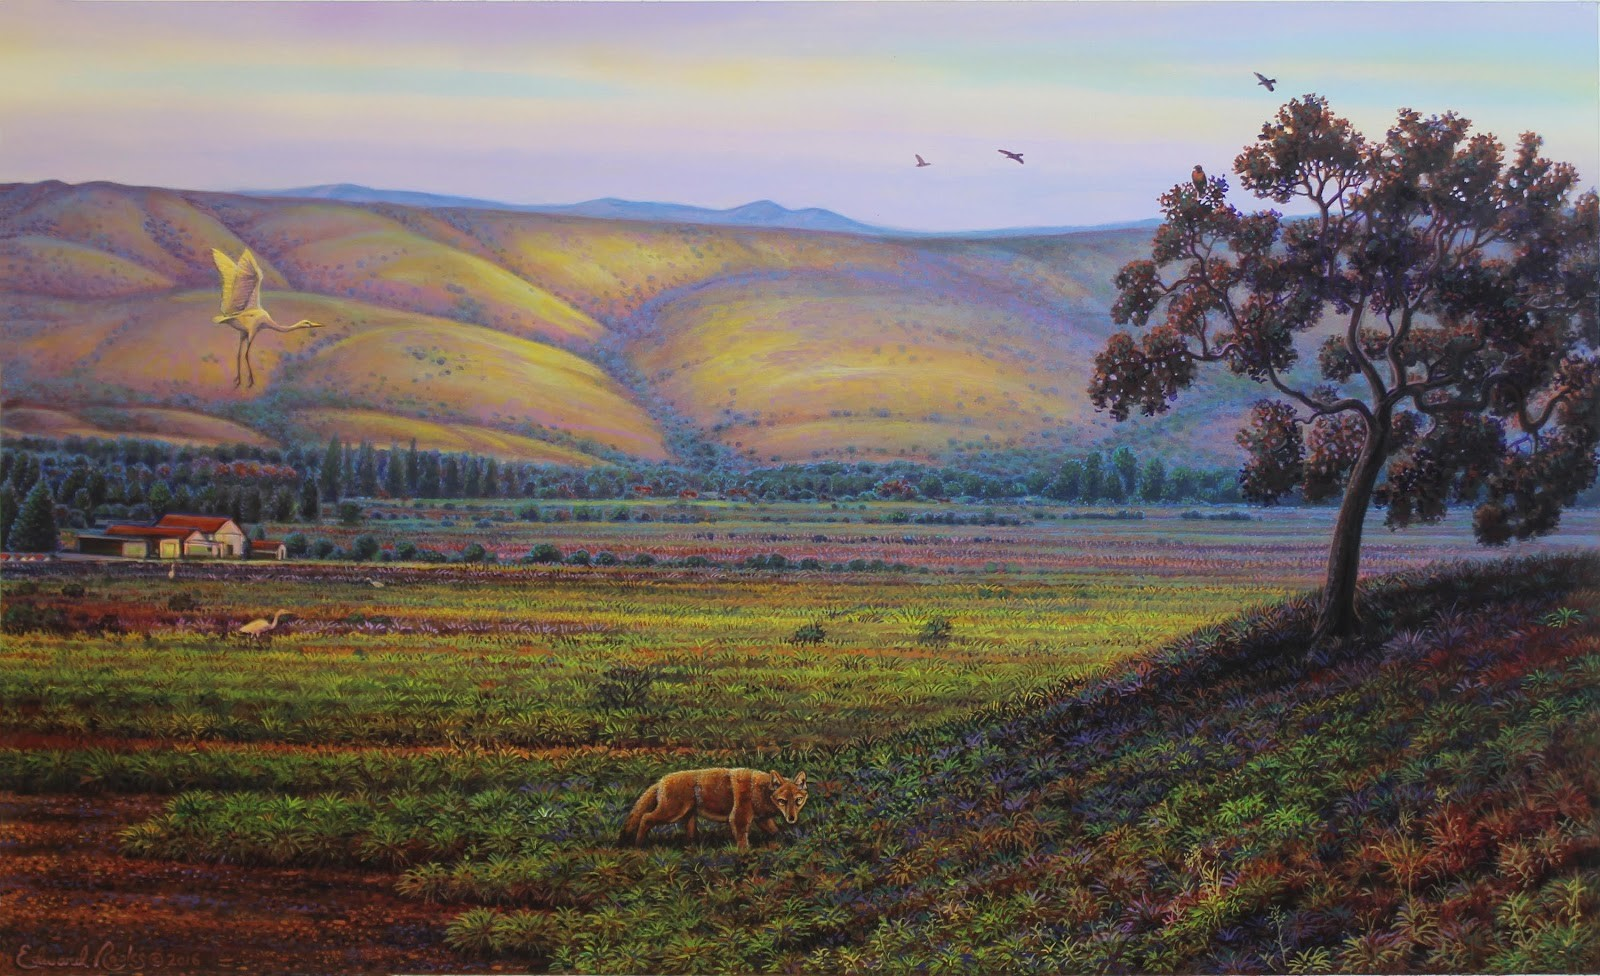 ed rooks coyote valley